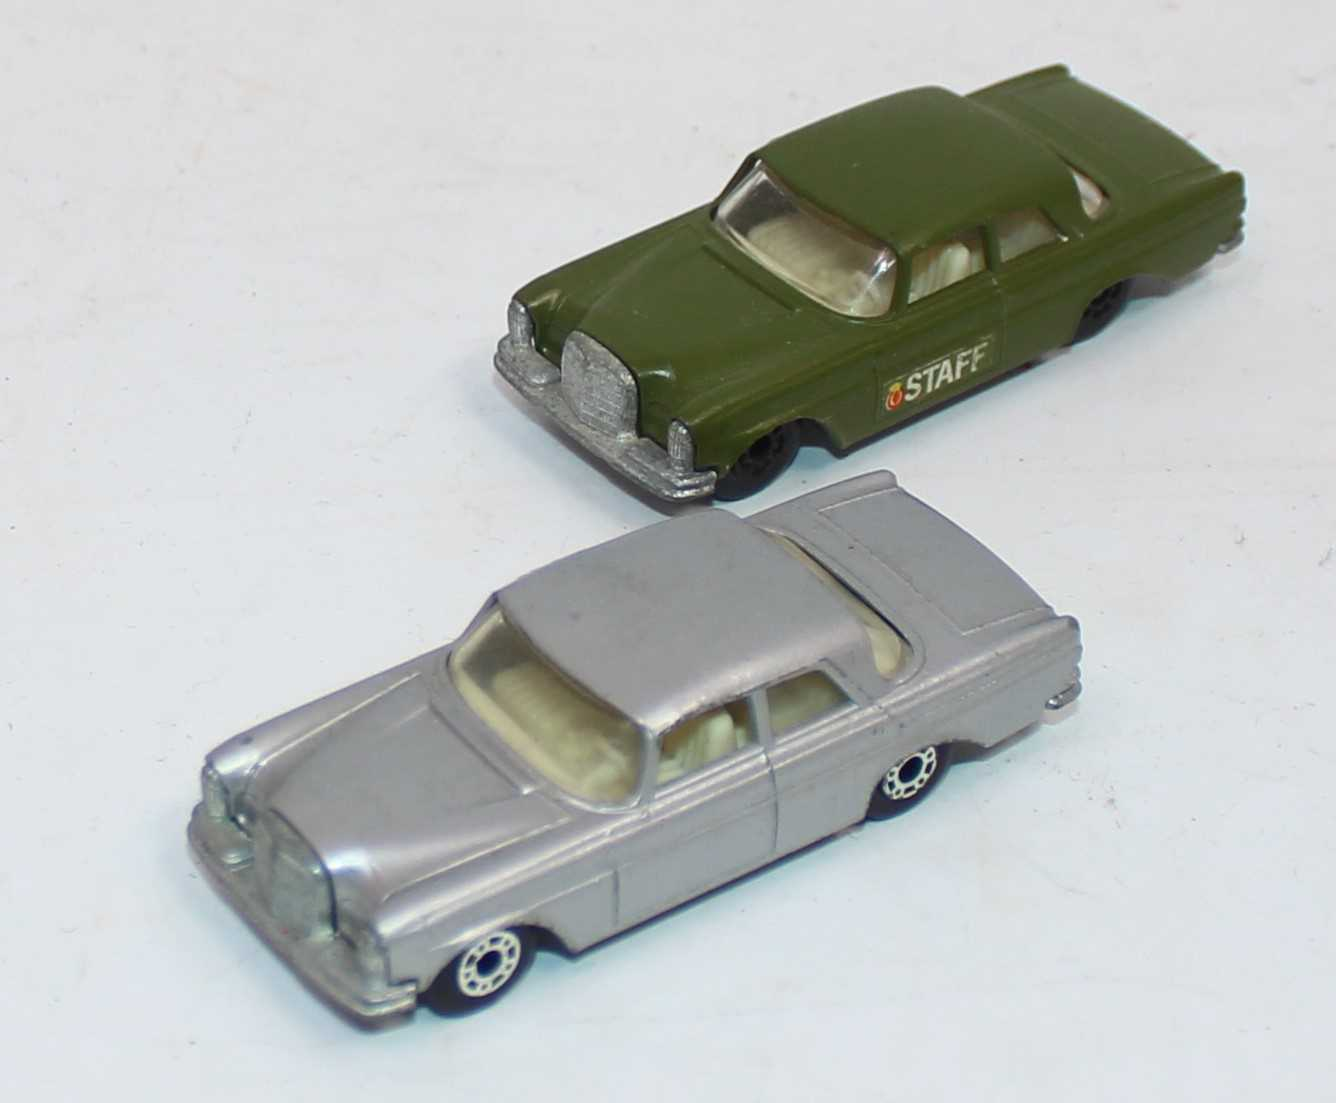 Matchbox group of 2 Mercedes 300SE late superfast Tesco Value Pack models, one in silver and the